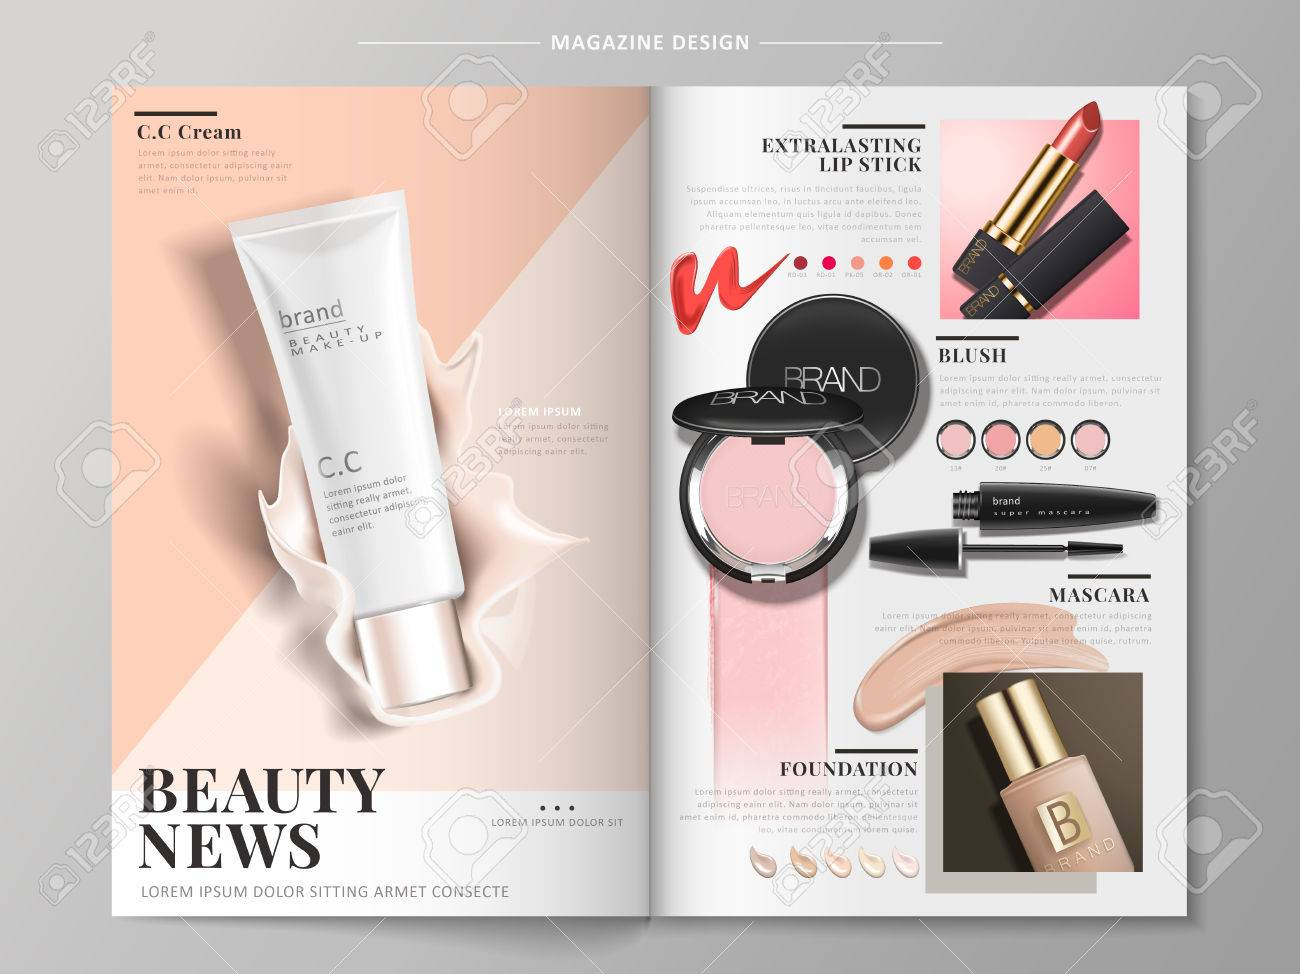 cosmetic brochure with products like mascara, foundation case and lipstick, 3d illustration - 82761436